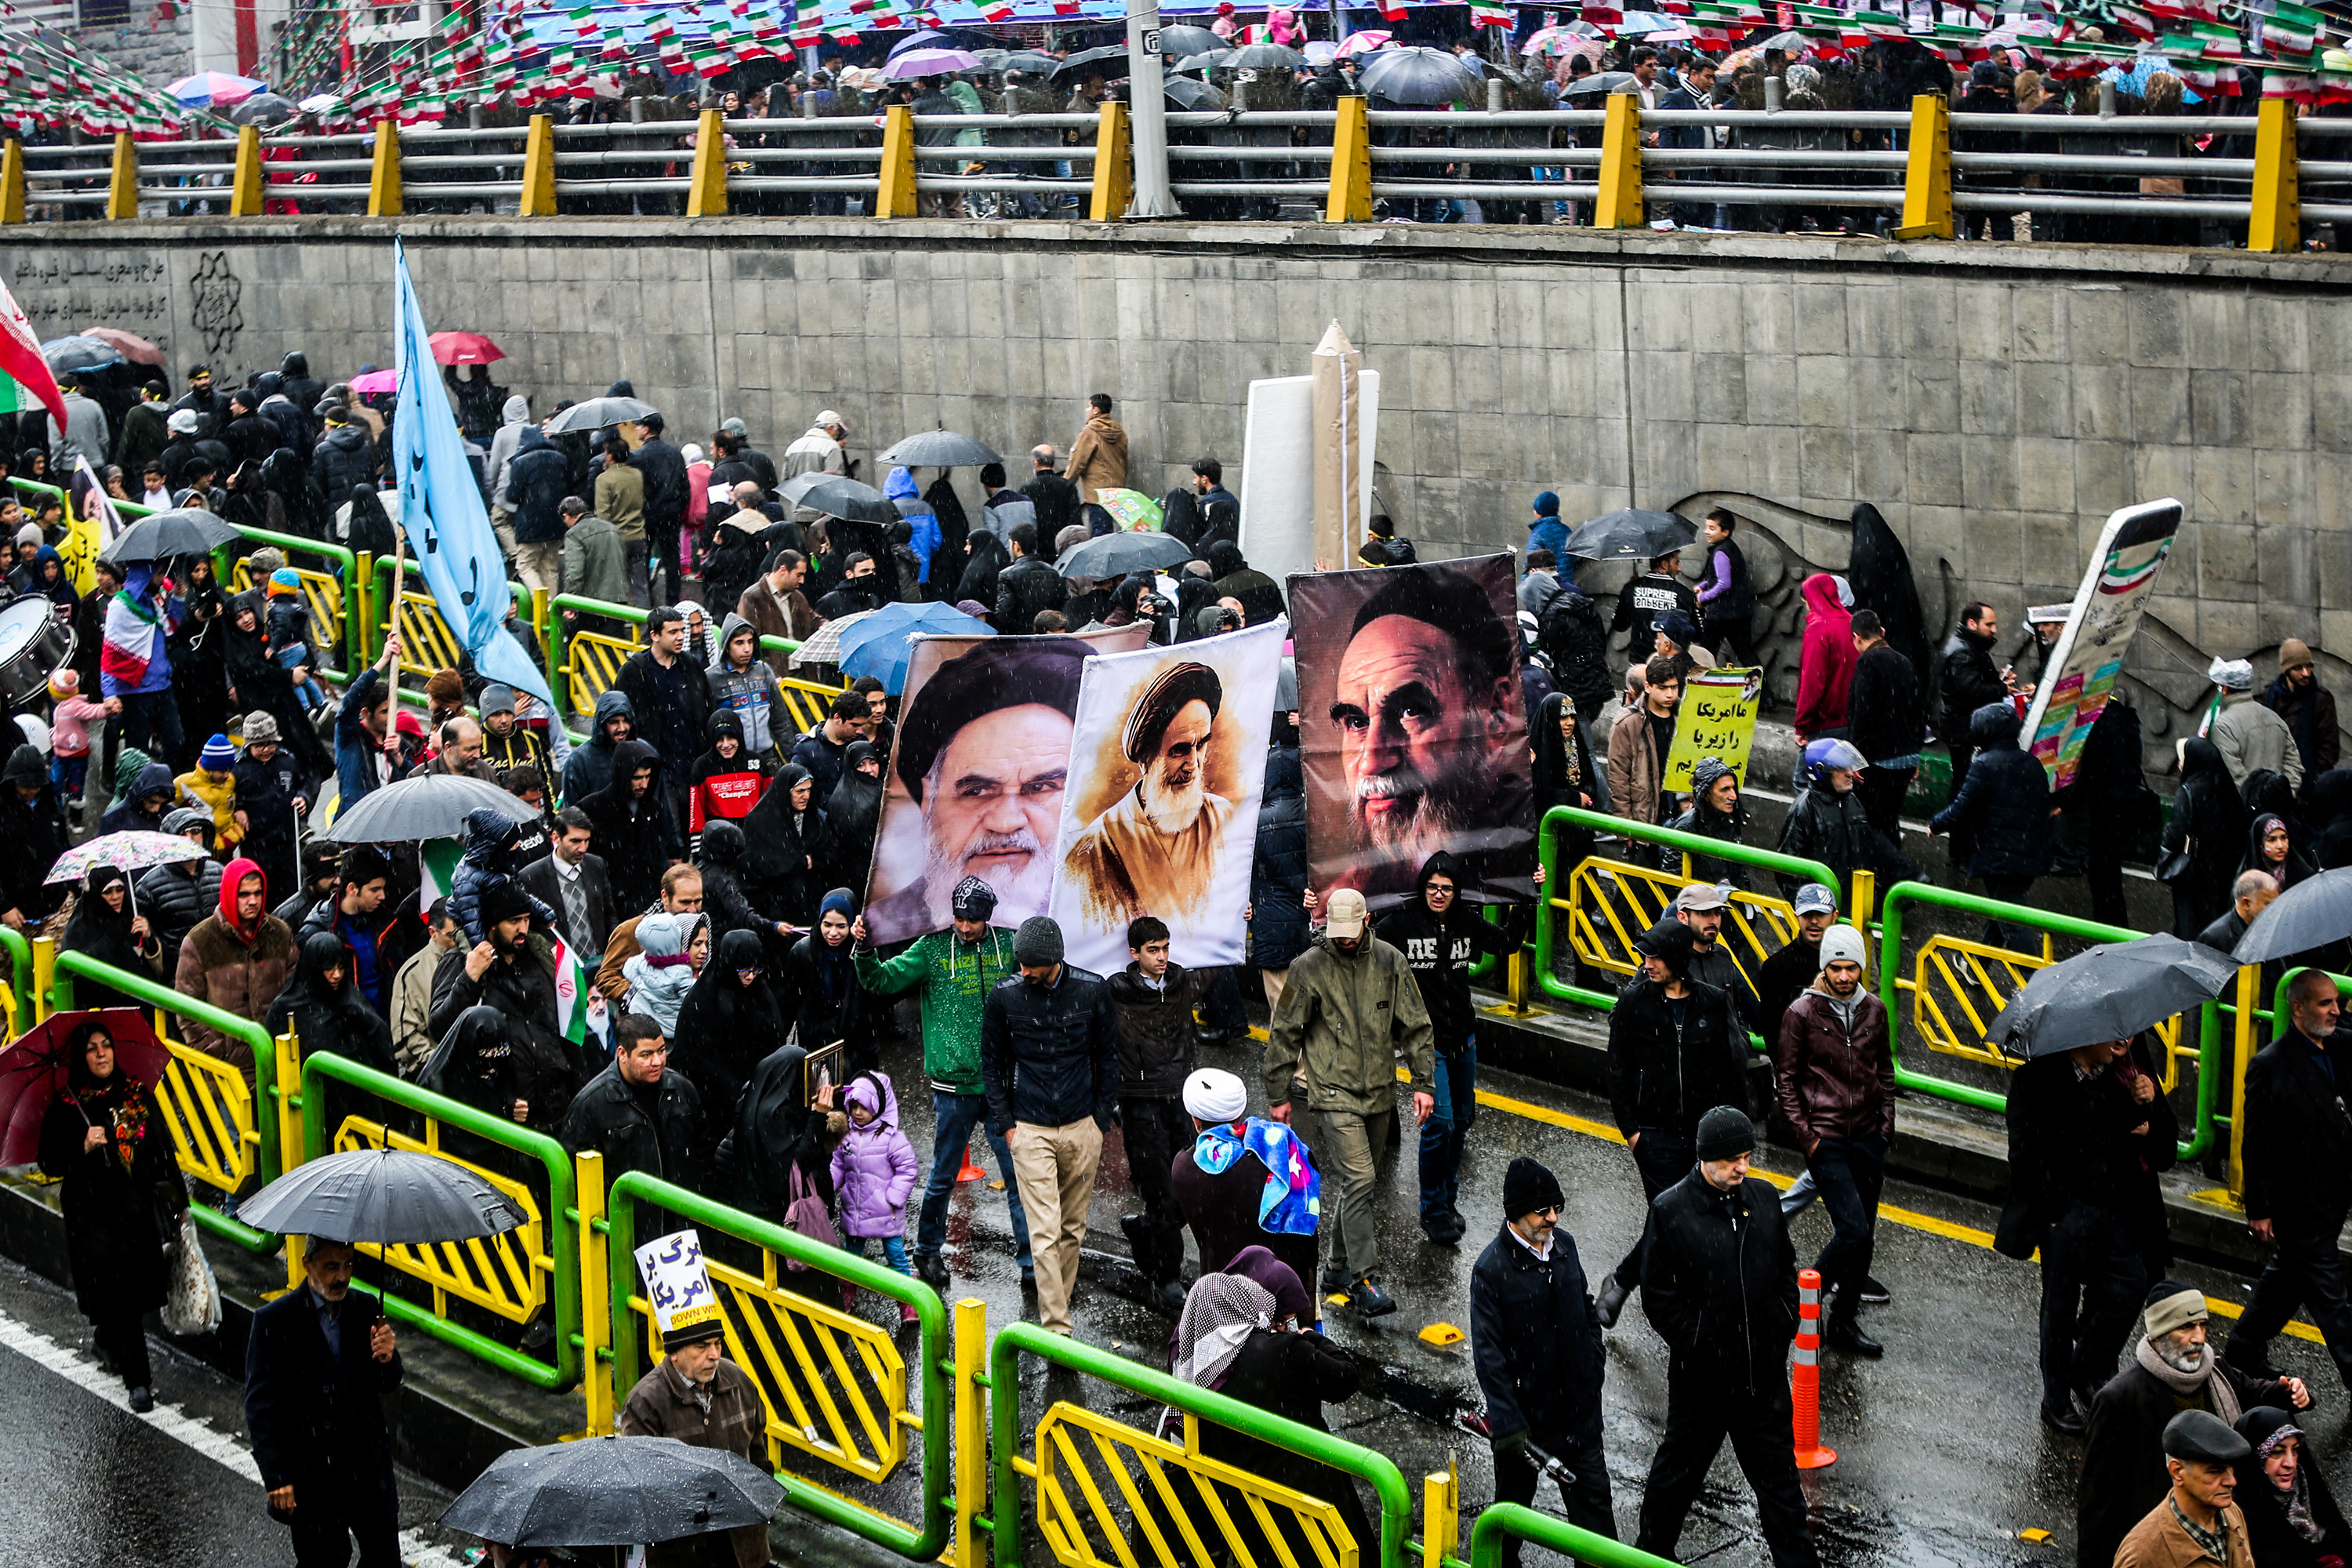 Iranian people gather during a ceremony to mark the 40th anniversary of the Islamic Revolution in Tehran, Iran February 11, 2019. Vahid Ahmadi/Tasnim News Agency/via REUTERS